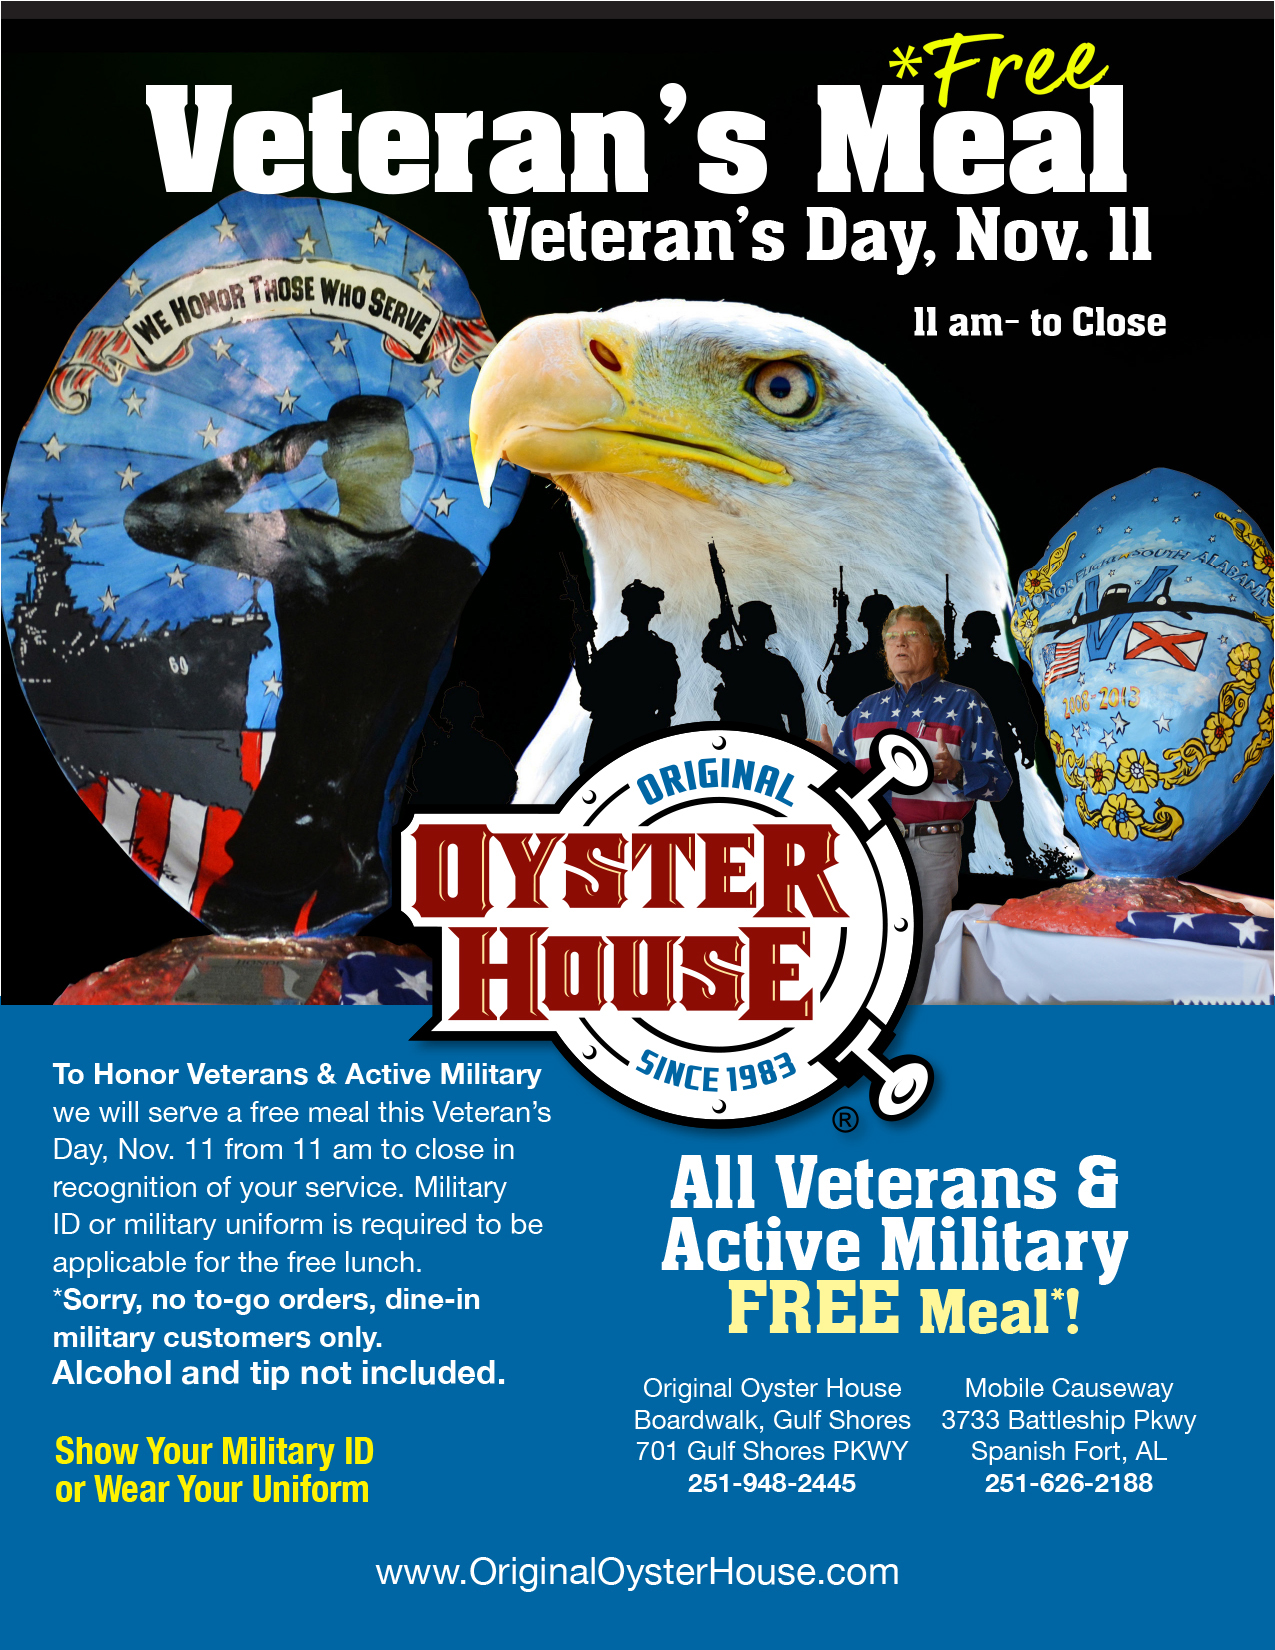 Original Oyster House Honors Military with Free Meal on Veteran's Day